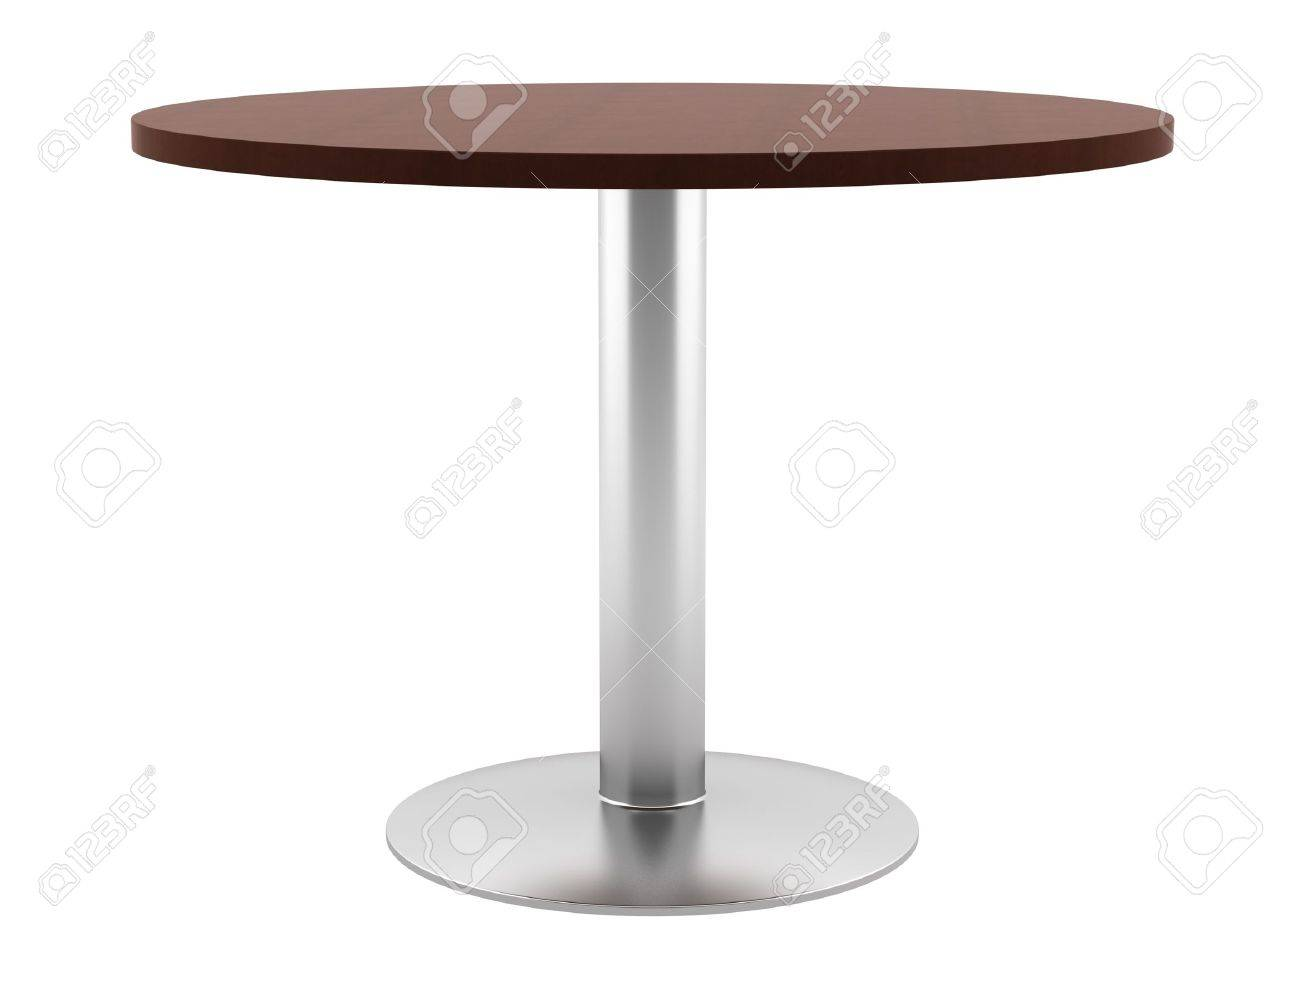 Circular Tables: Modern Brown Wooden Round Table Isolated On White  Background